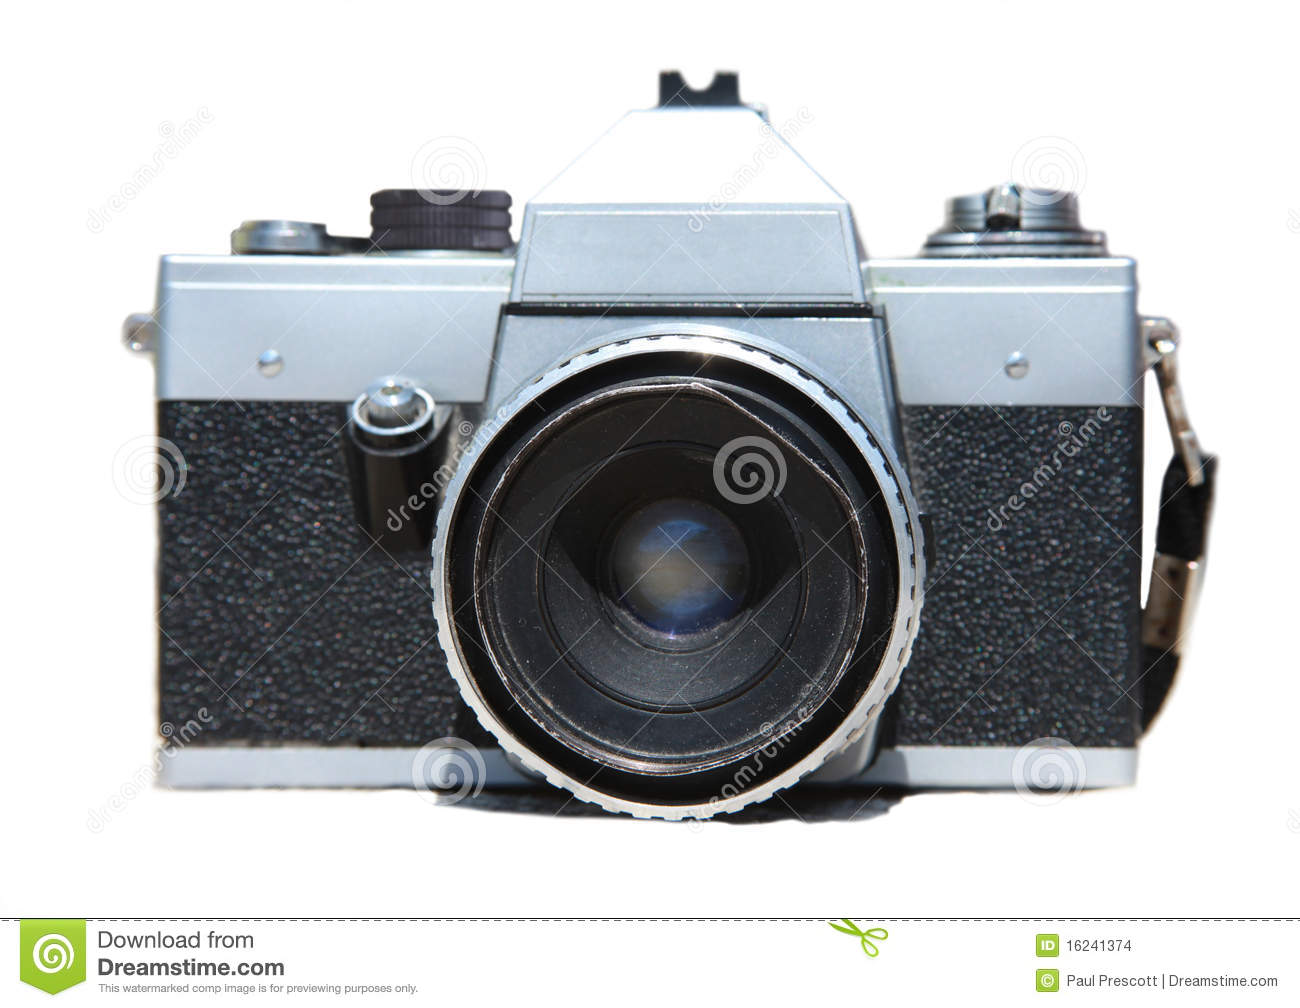 Old praktica camera stock photo. image of antique frame 16241374